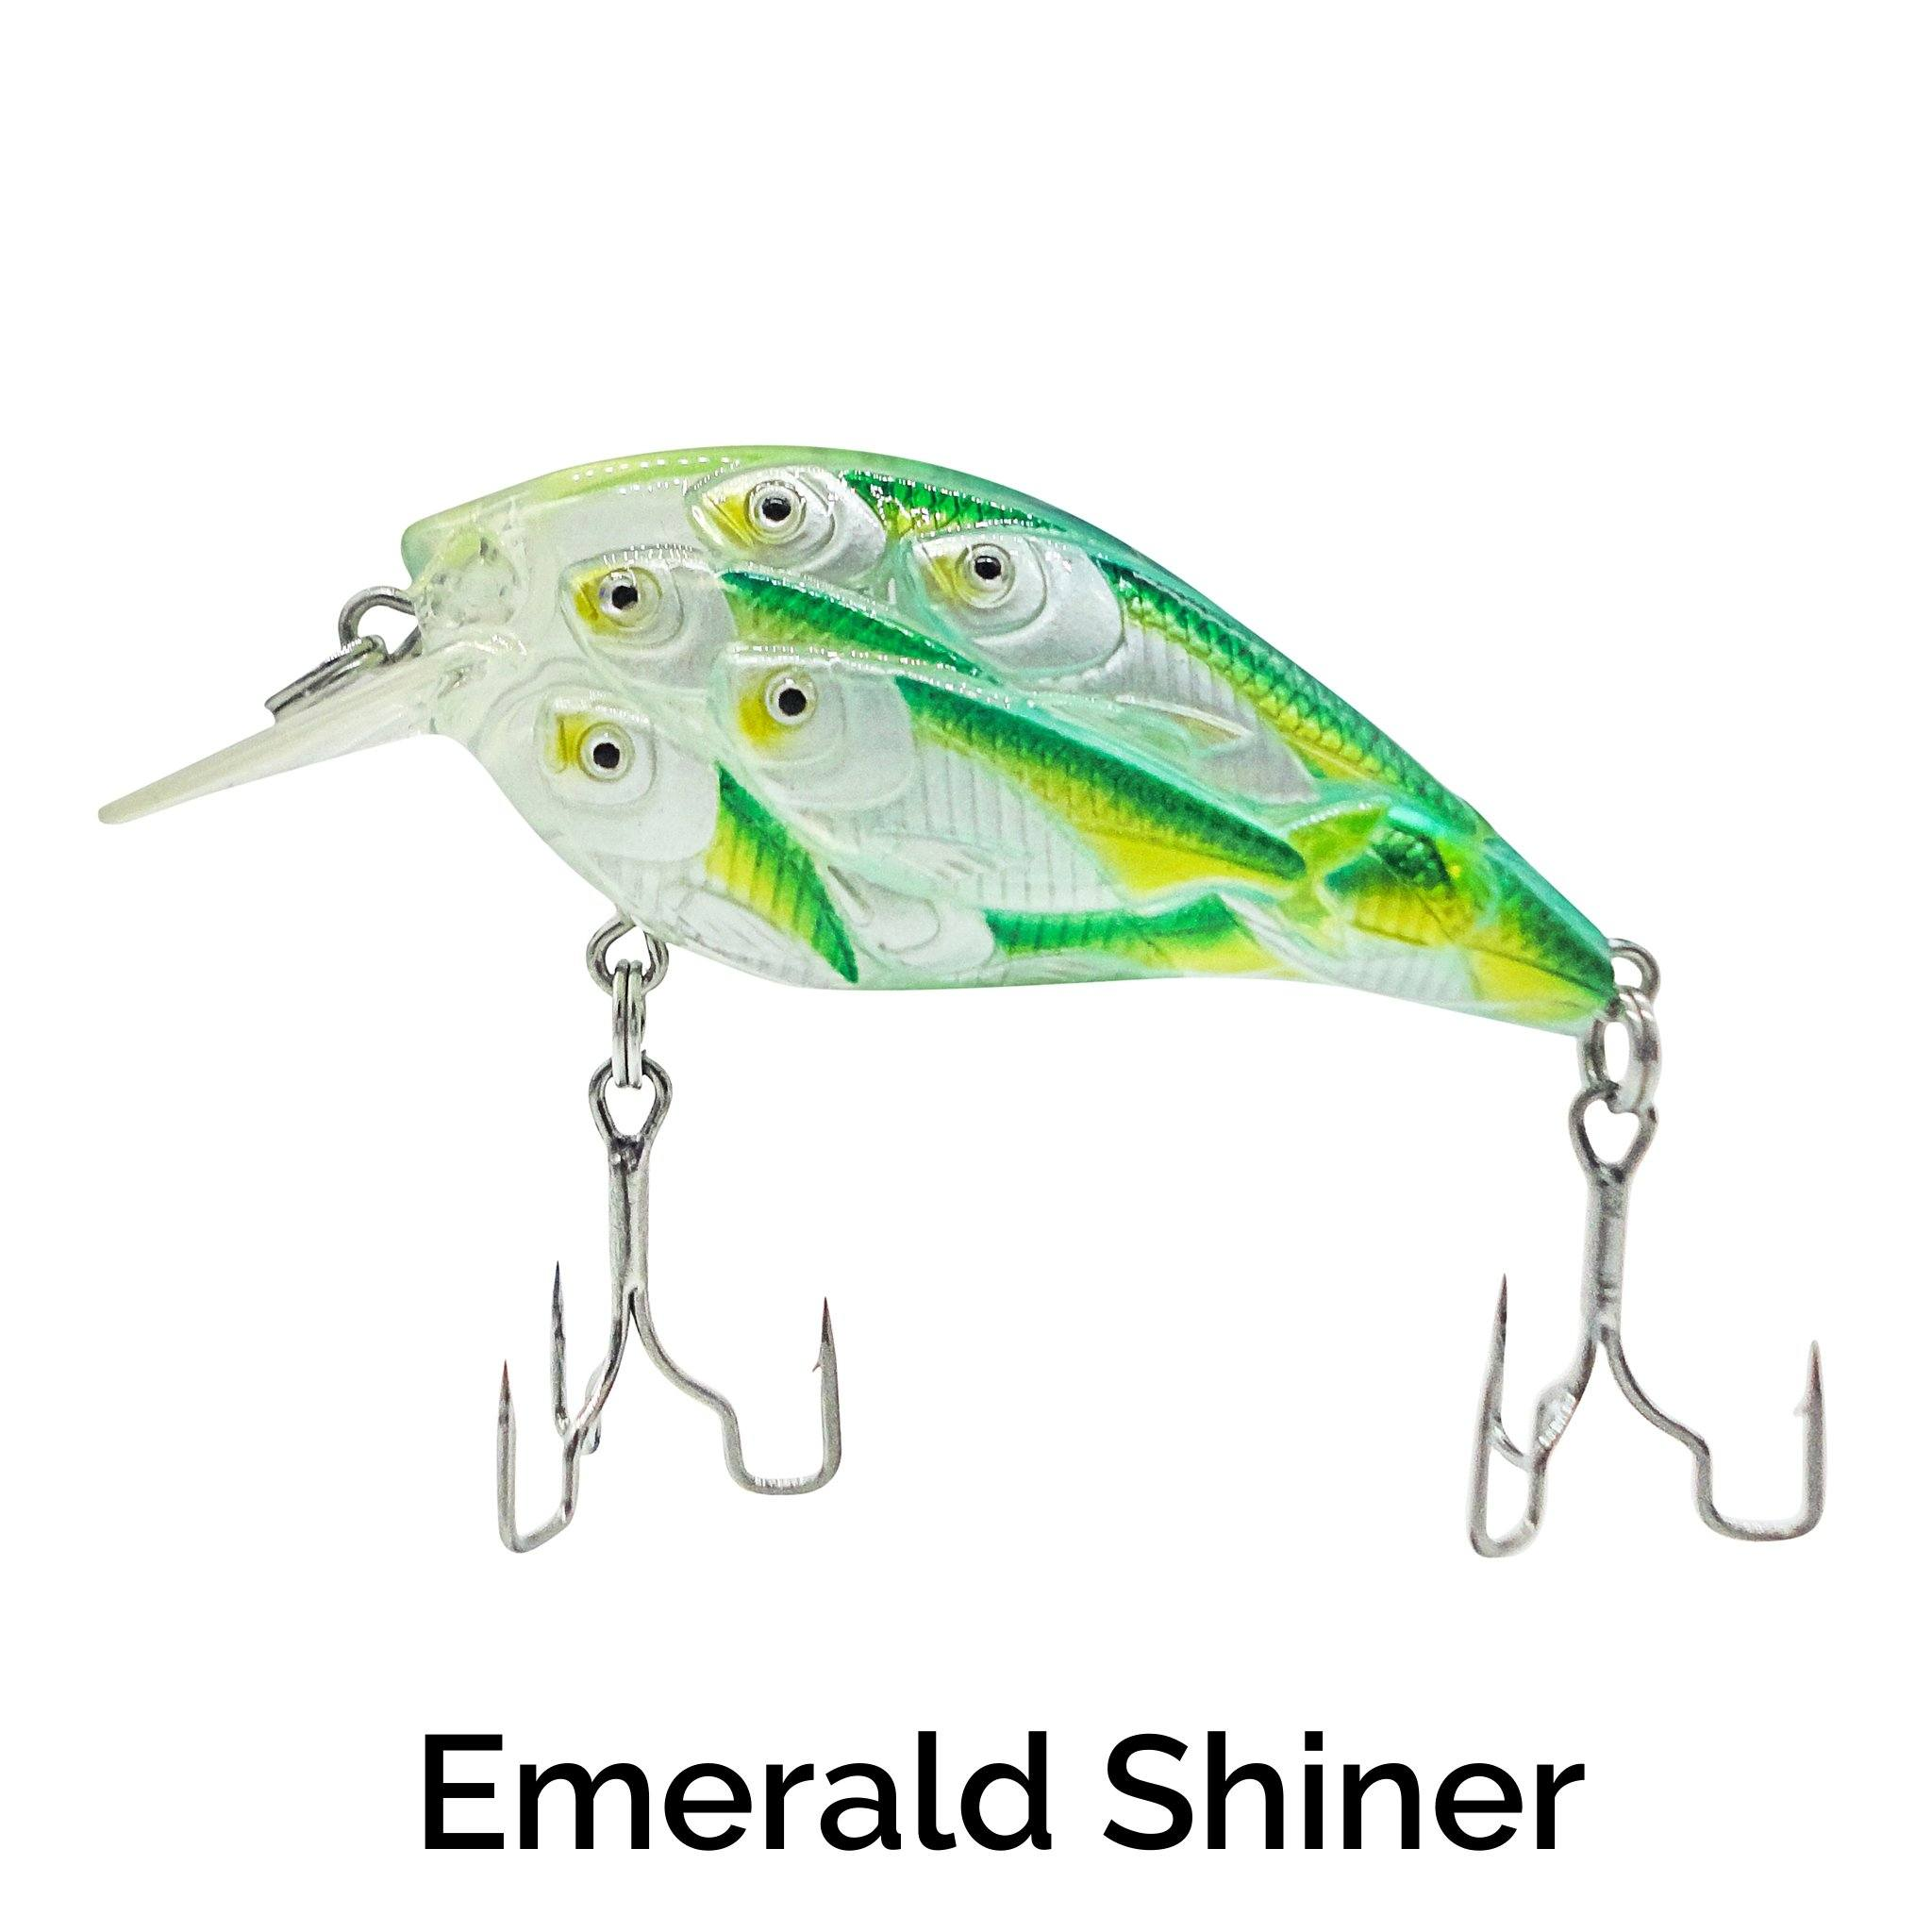 Trapper Schooling Squarebill Related Trapper Tackle LLC Emerald Shiner